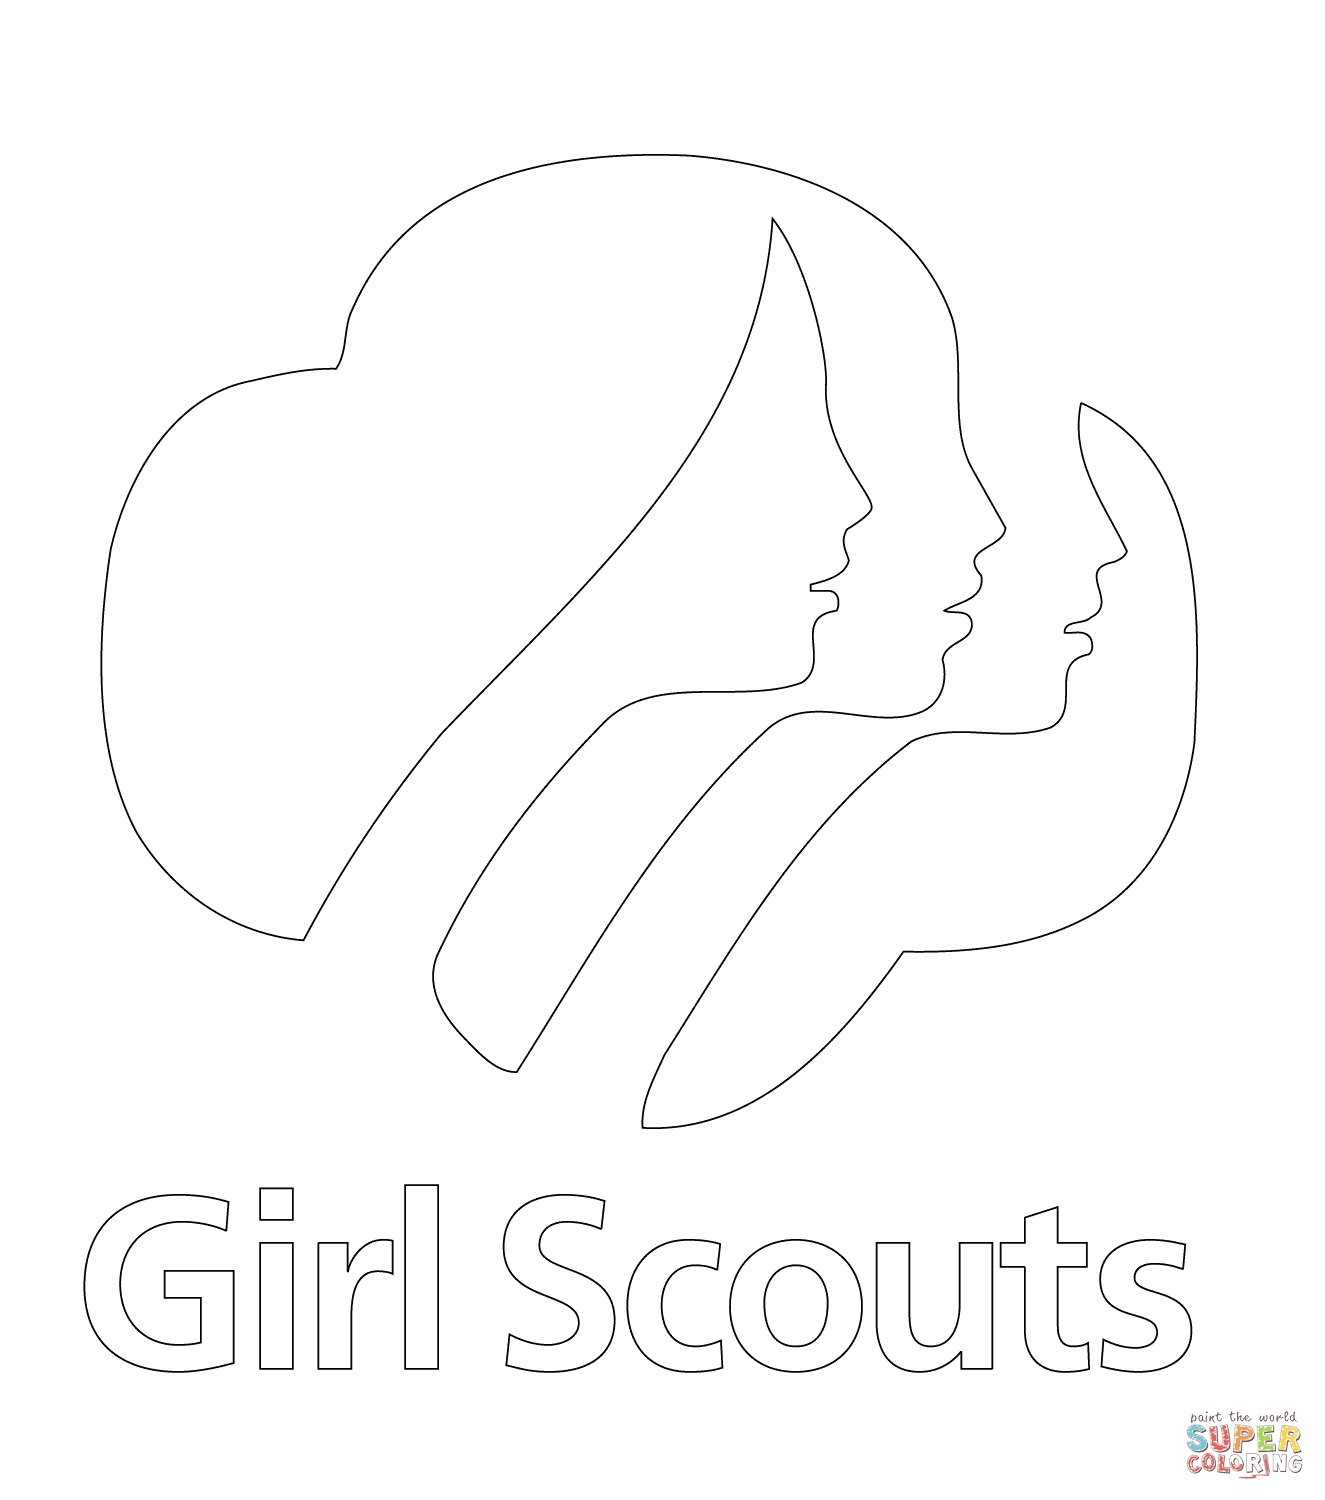 girl scout coloring pages - girl scouts logo